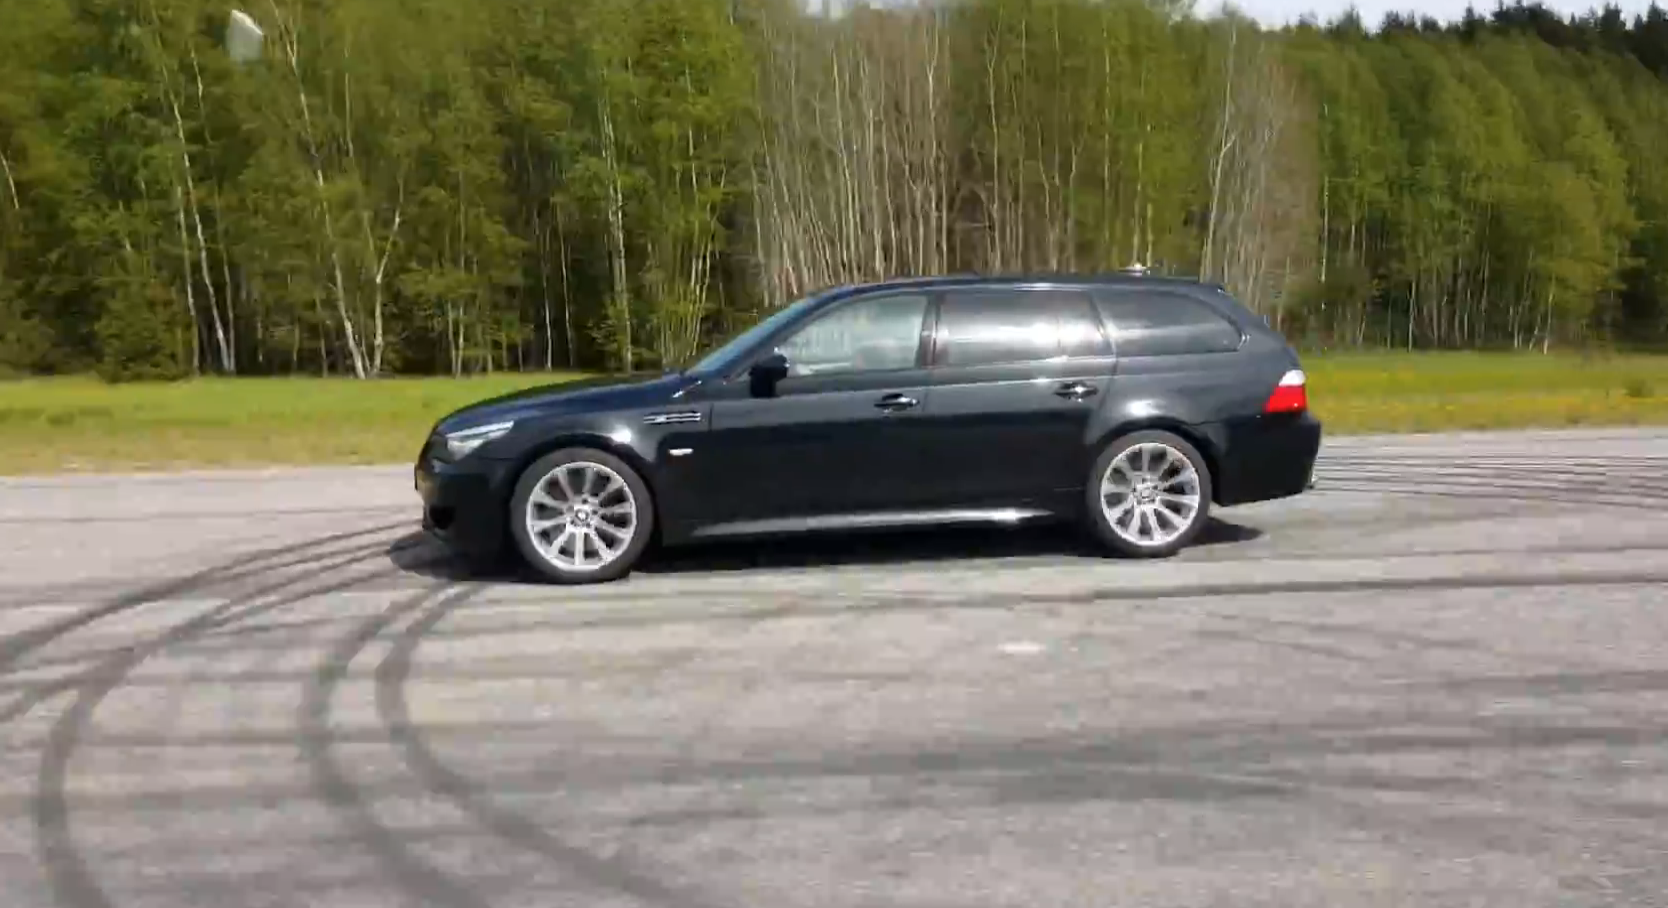 2016 Bmw X5 M Cant Keep Up With A Bmw E61 M5 Touring On The Drag